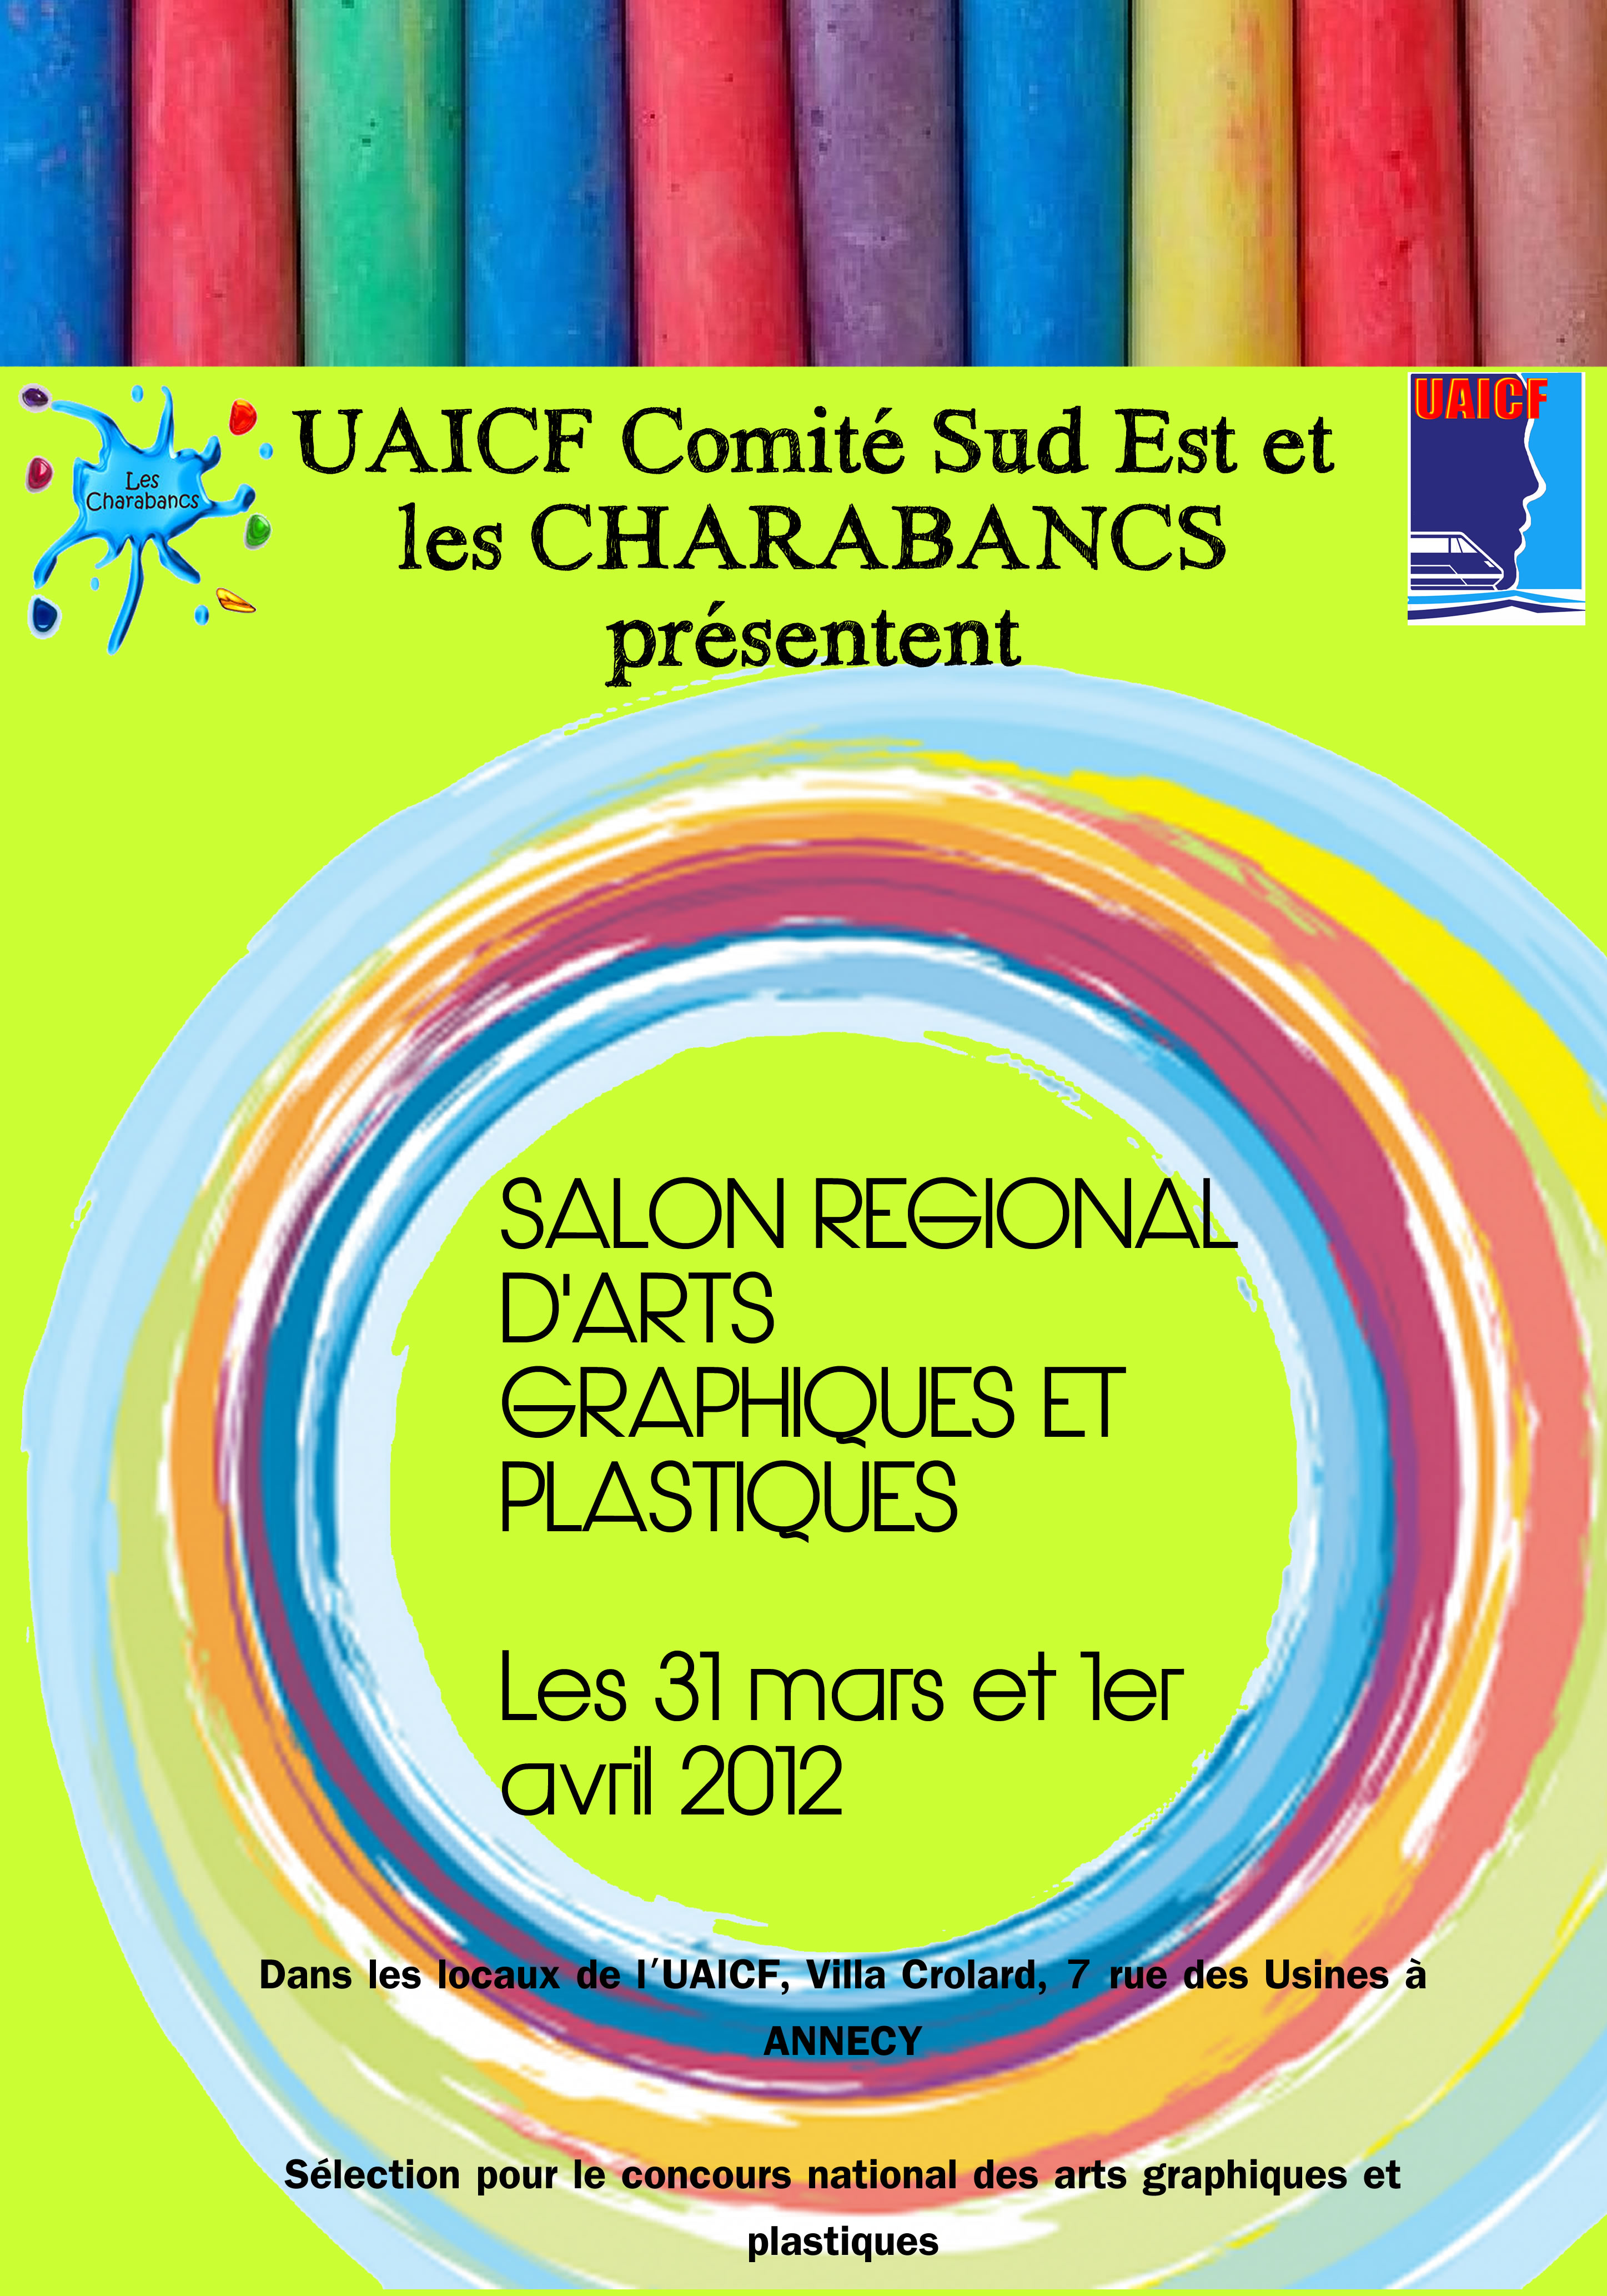 UAICF Charabancs salon d'arts graphique